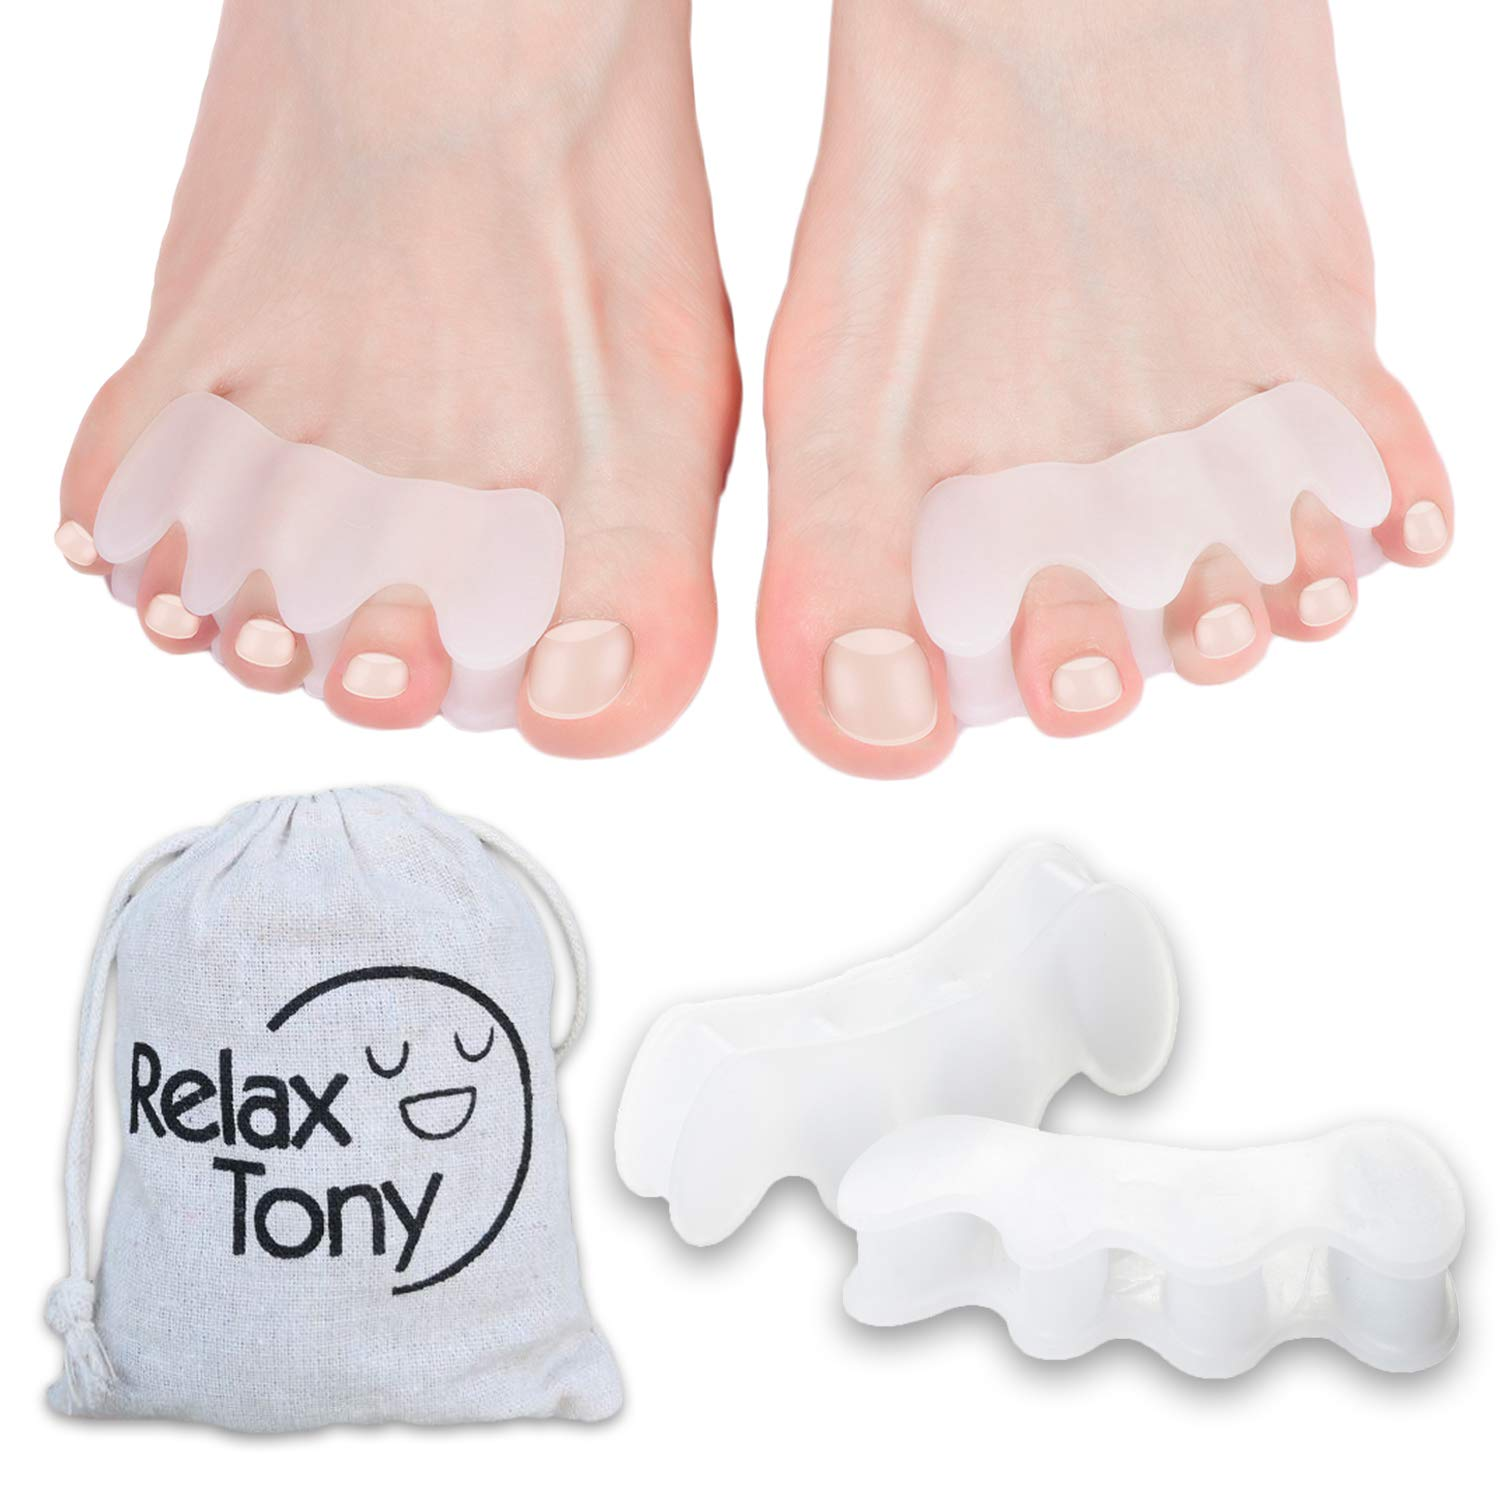 Anatomical Toe Separators, Straighteners & Spacers For Fitness and Wellness Use | Correct Your Toes Naturally | Great for Pedicure, Bunion Corrector & Yoga by Relax Tony